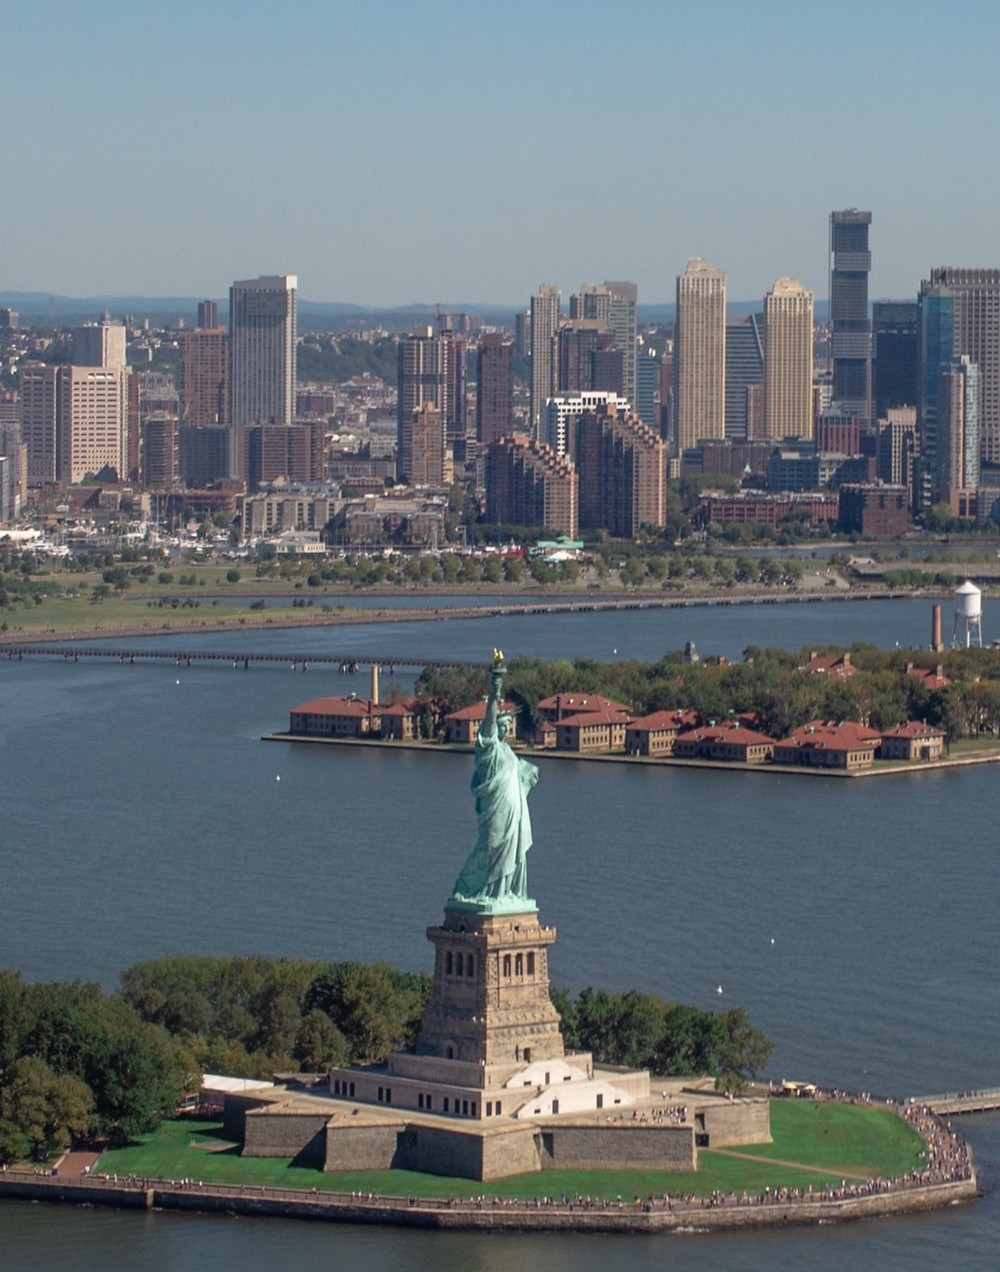 View of Ellis Island and the Statue of Liberty with skyscrapers in the background